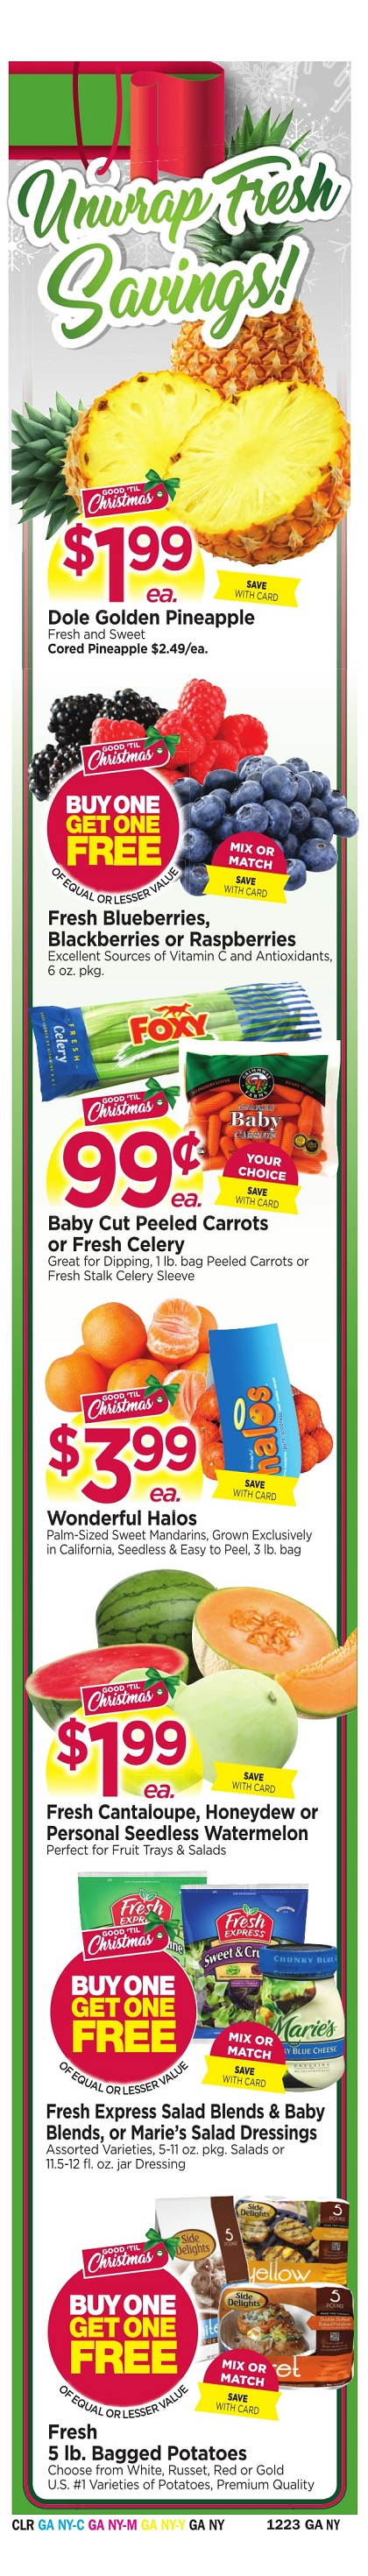 Tops Markets Ad Scan Week 12 17 Wrap